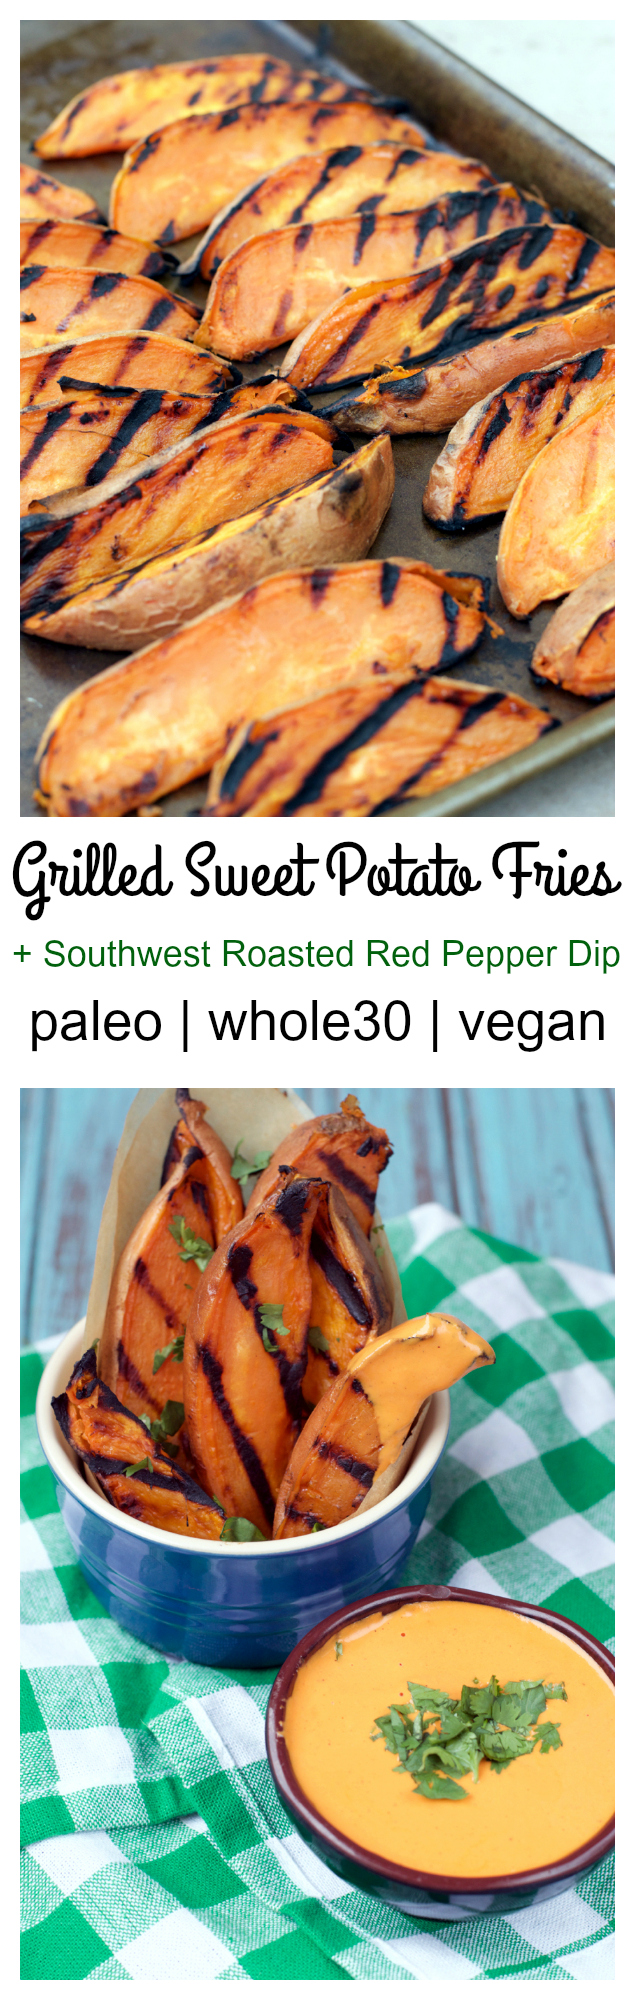 Grilled Sweet Potato Wedges with Southwest Roasted Red Pepper Dip | Plaid and Paleo